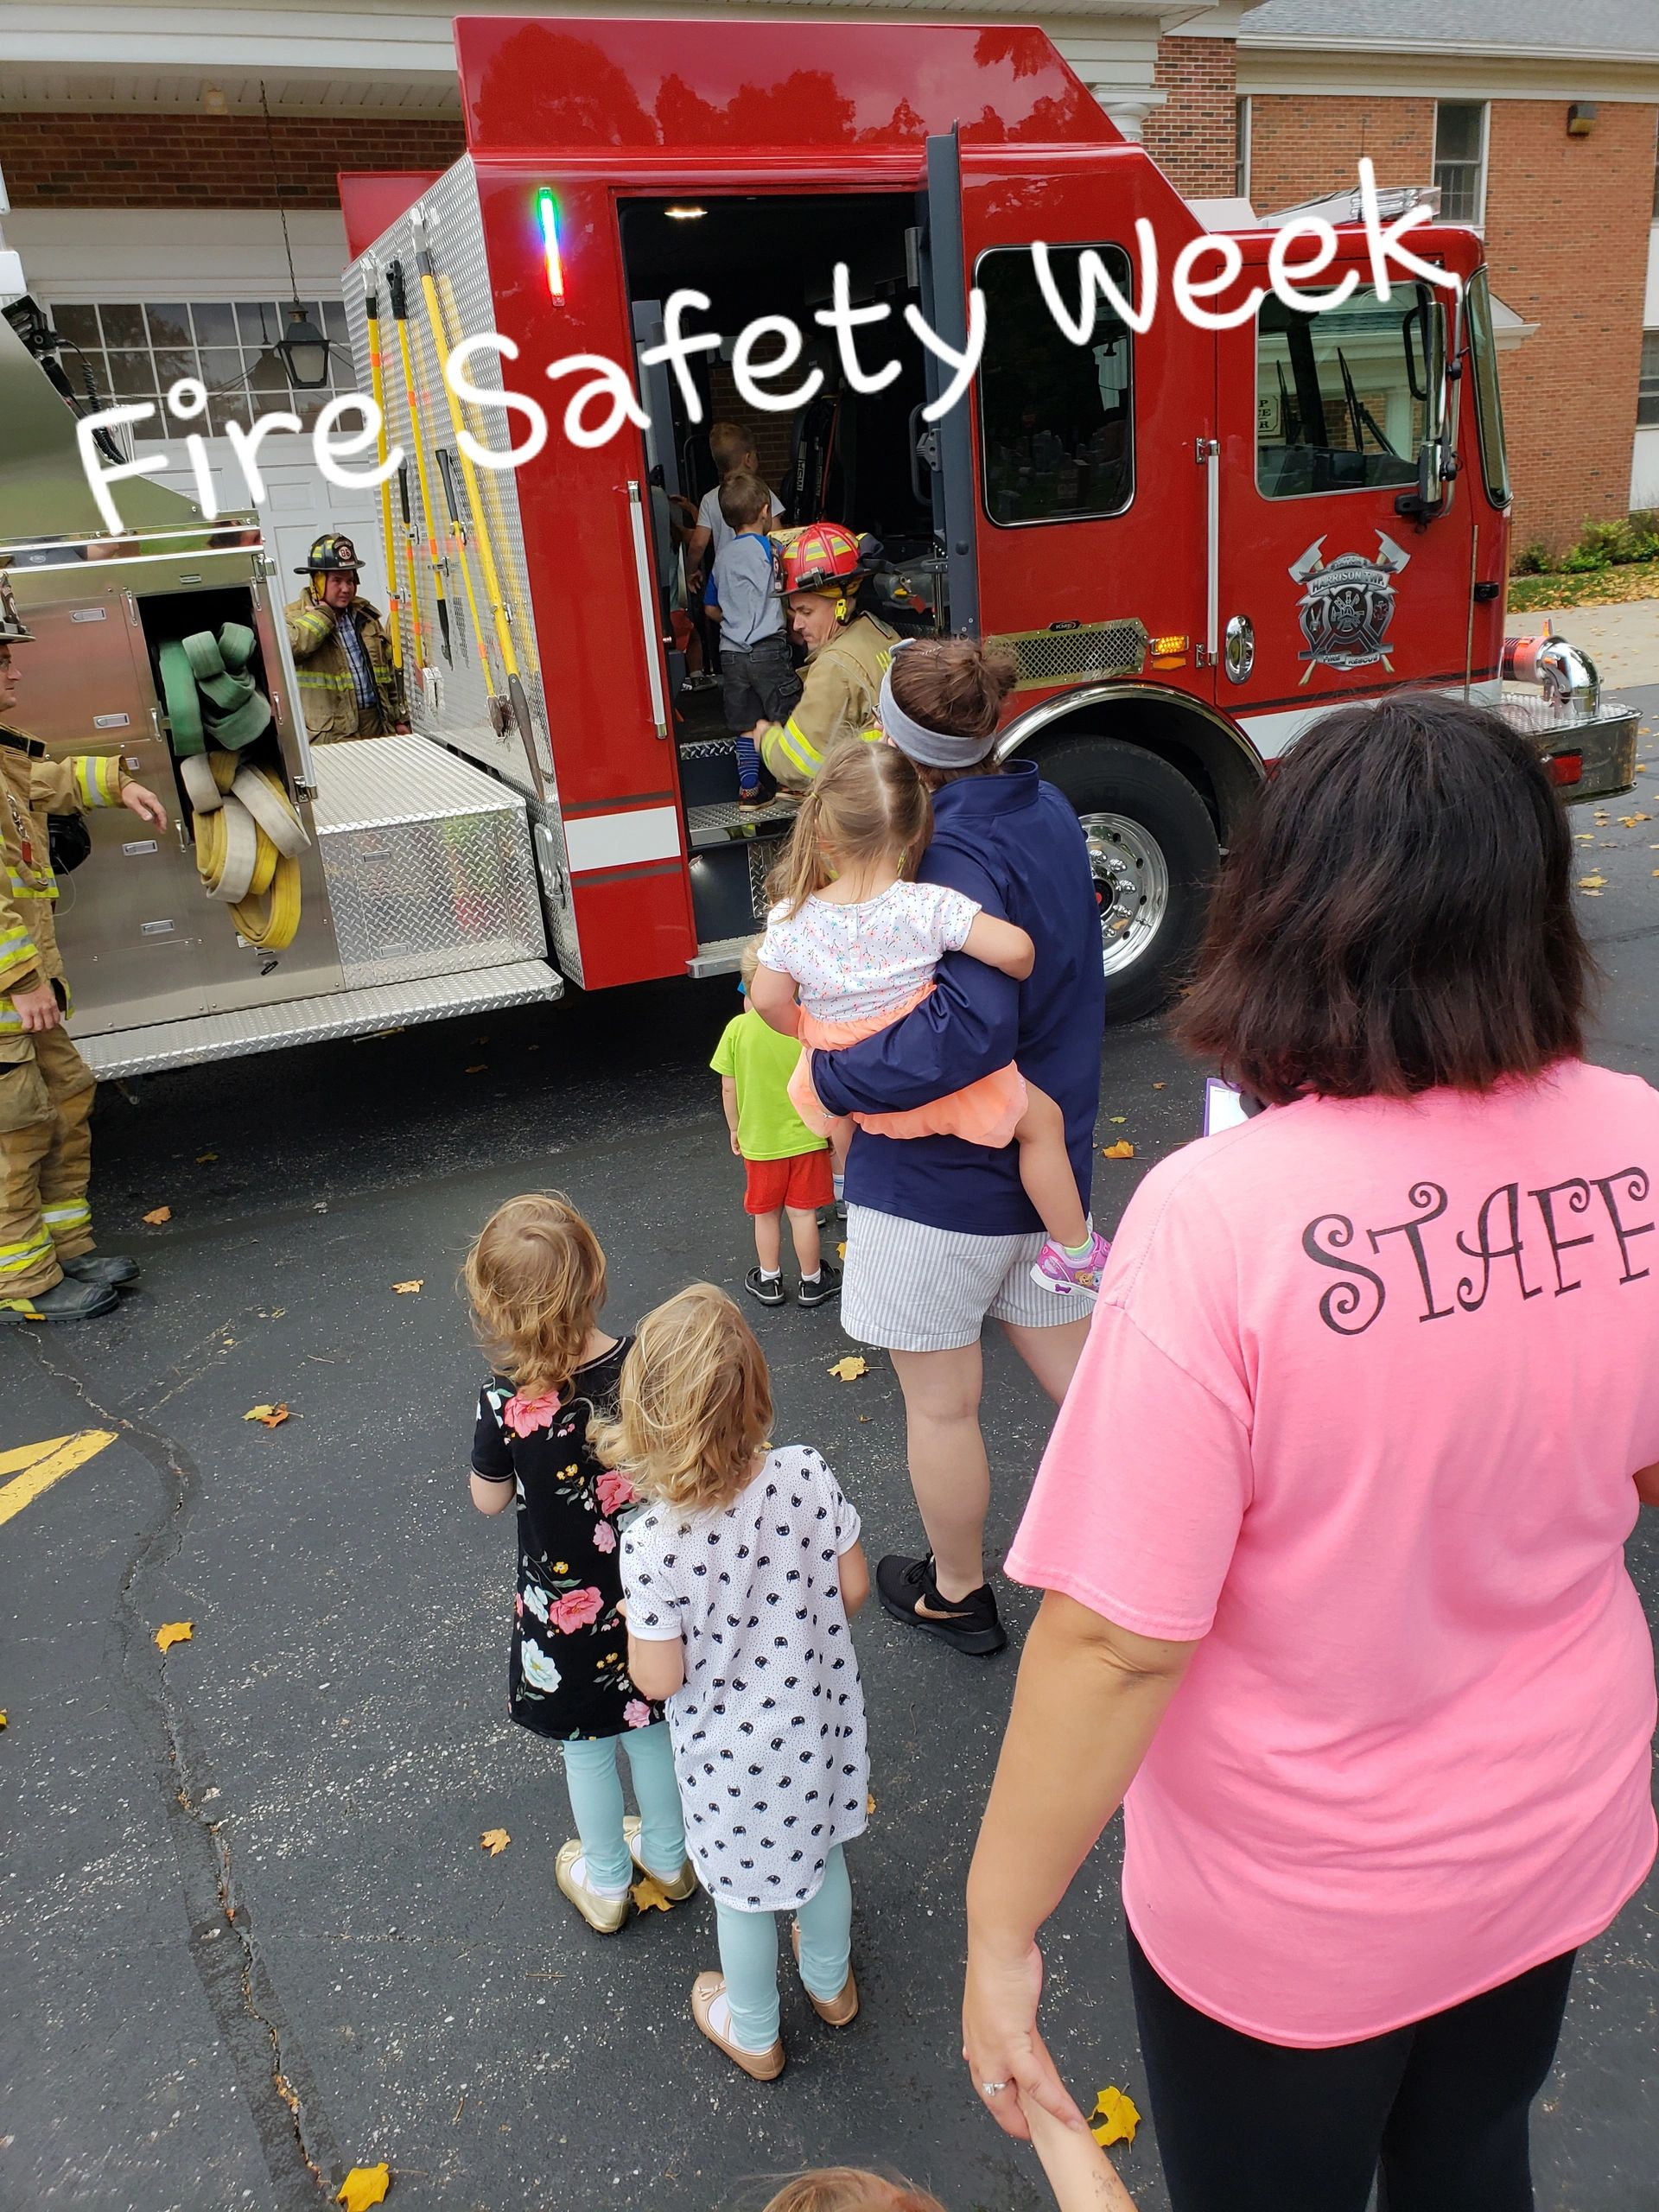 "{""blocks"":[{""key"":""9r059"",""text"":""Every year we participate in Fire Safety week and the kiddos Love It! "",""type"":""unstyled"",""depth"":0,""inlineStyleRanges"":[],""entityRanges"":[],""data"":{}}],""entityMap"":{}}"